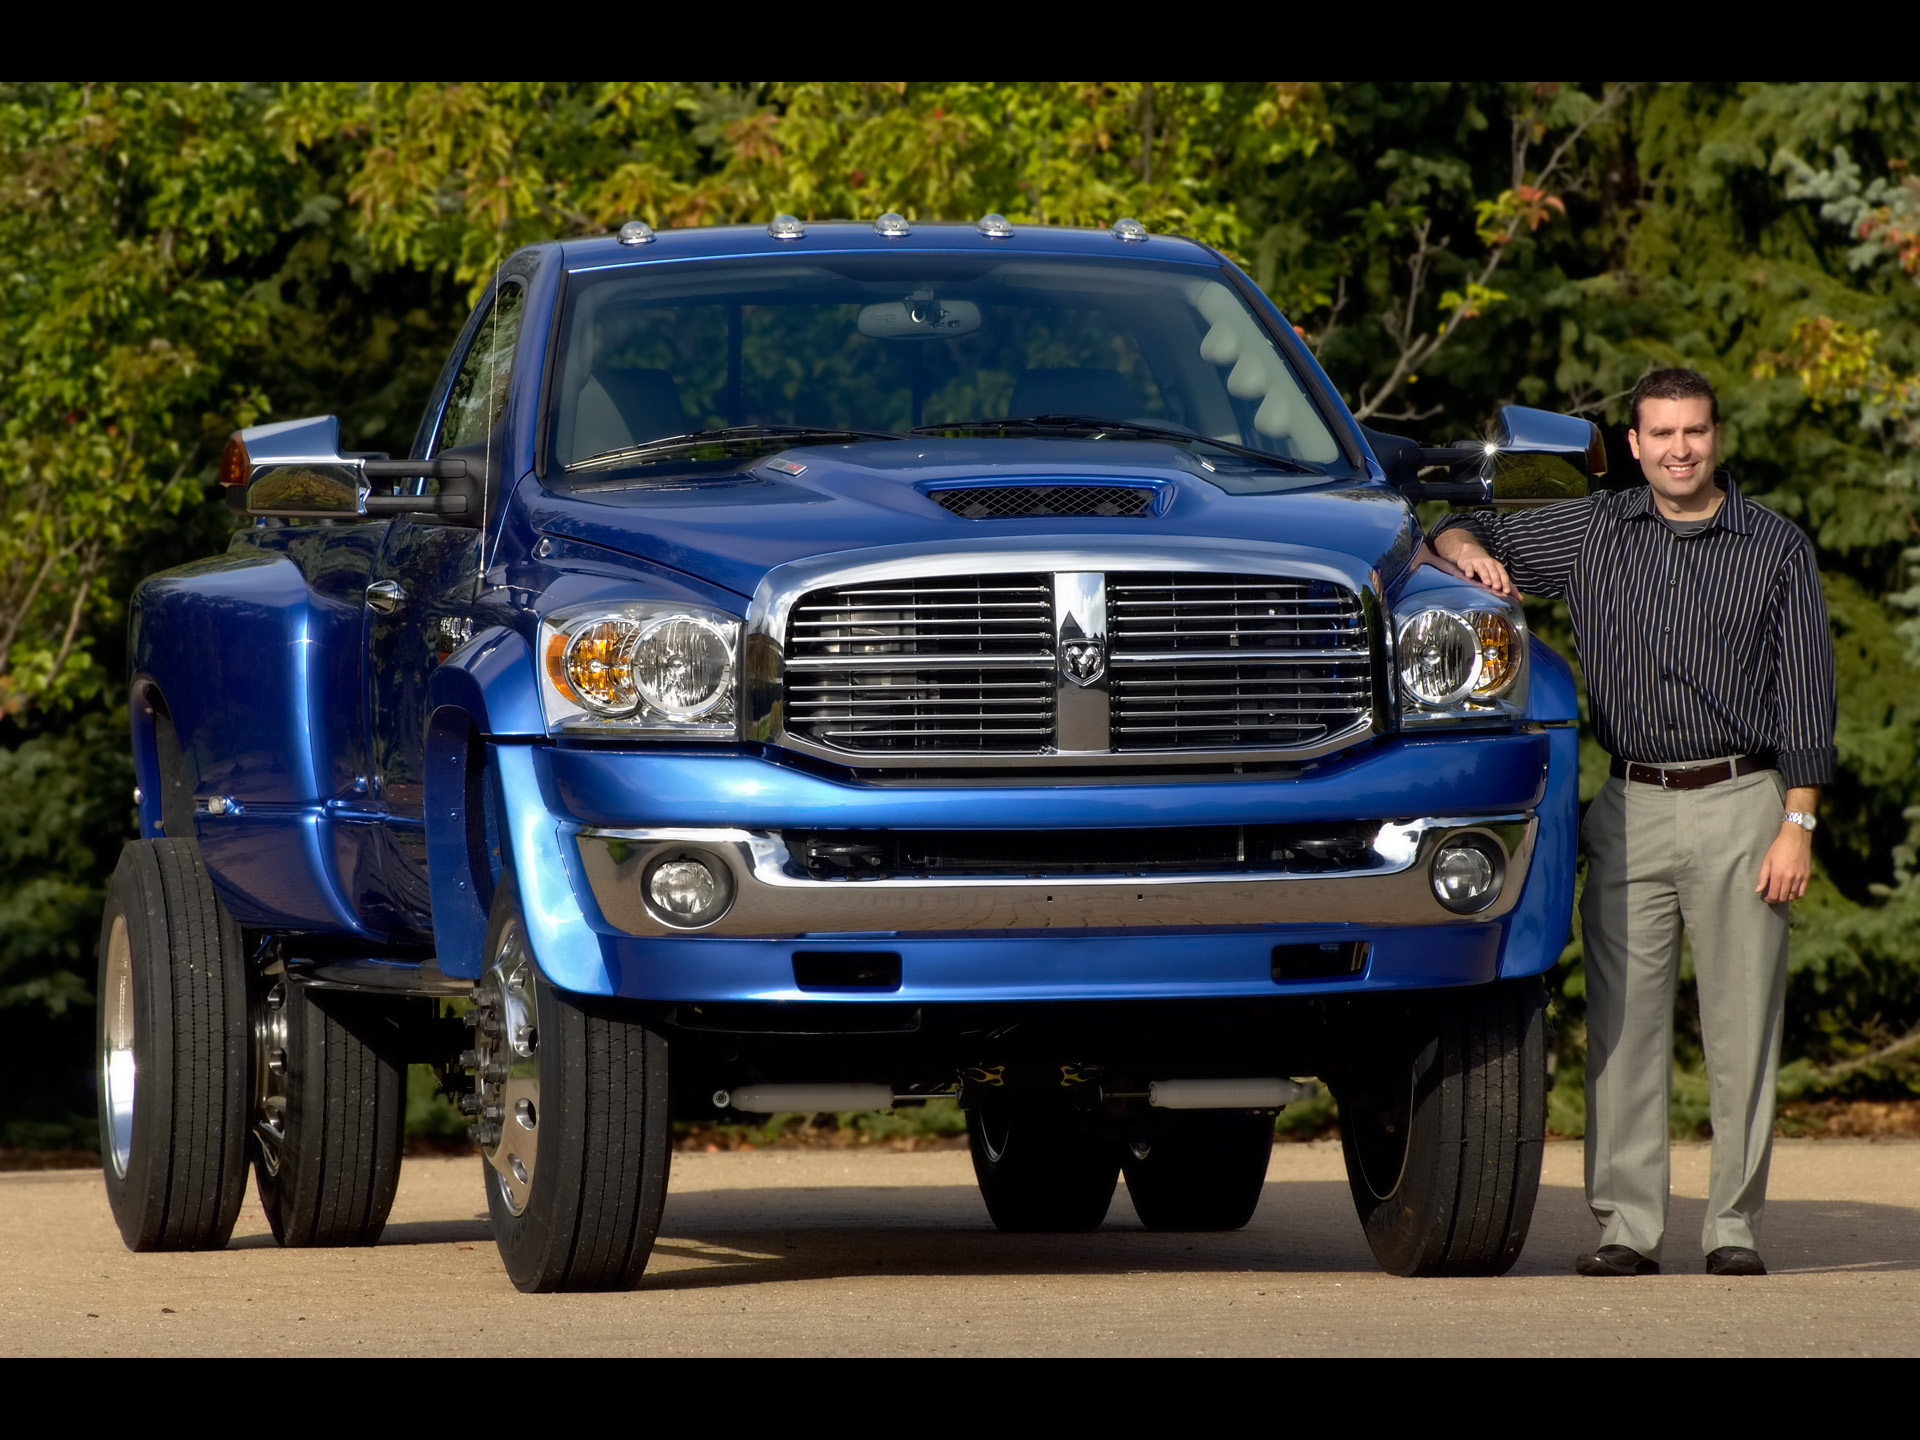 Dodge ram bft photos photogallery with 8 pics carsbase com